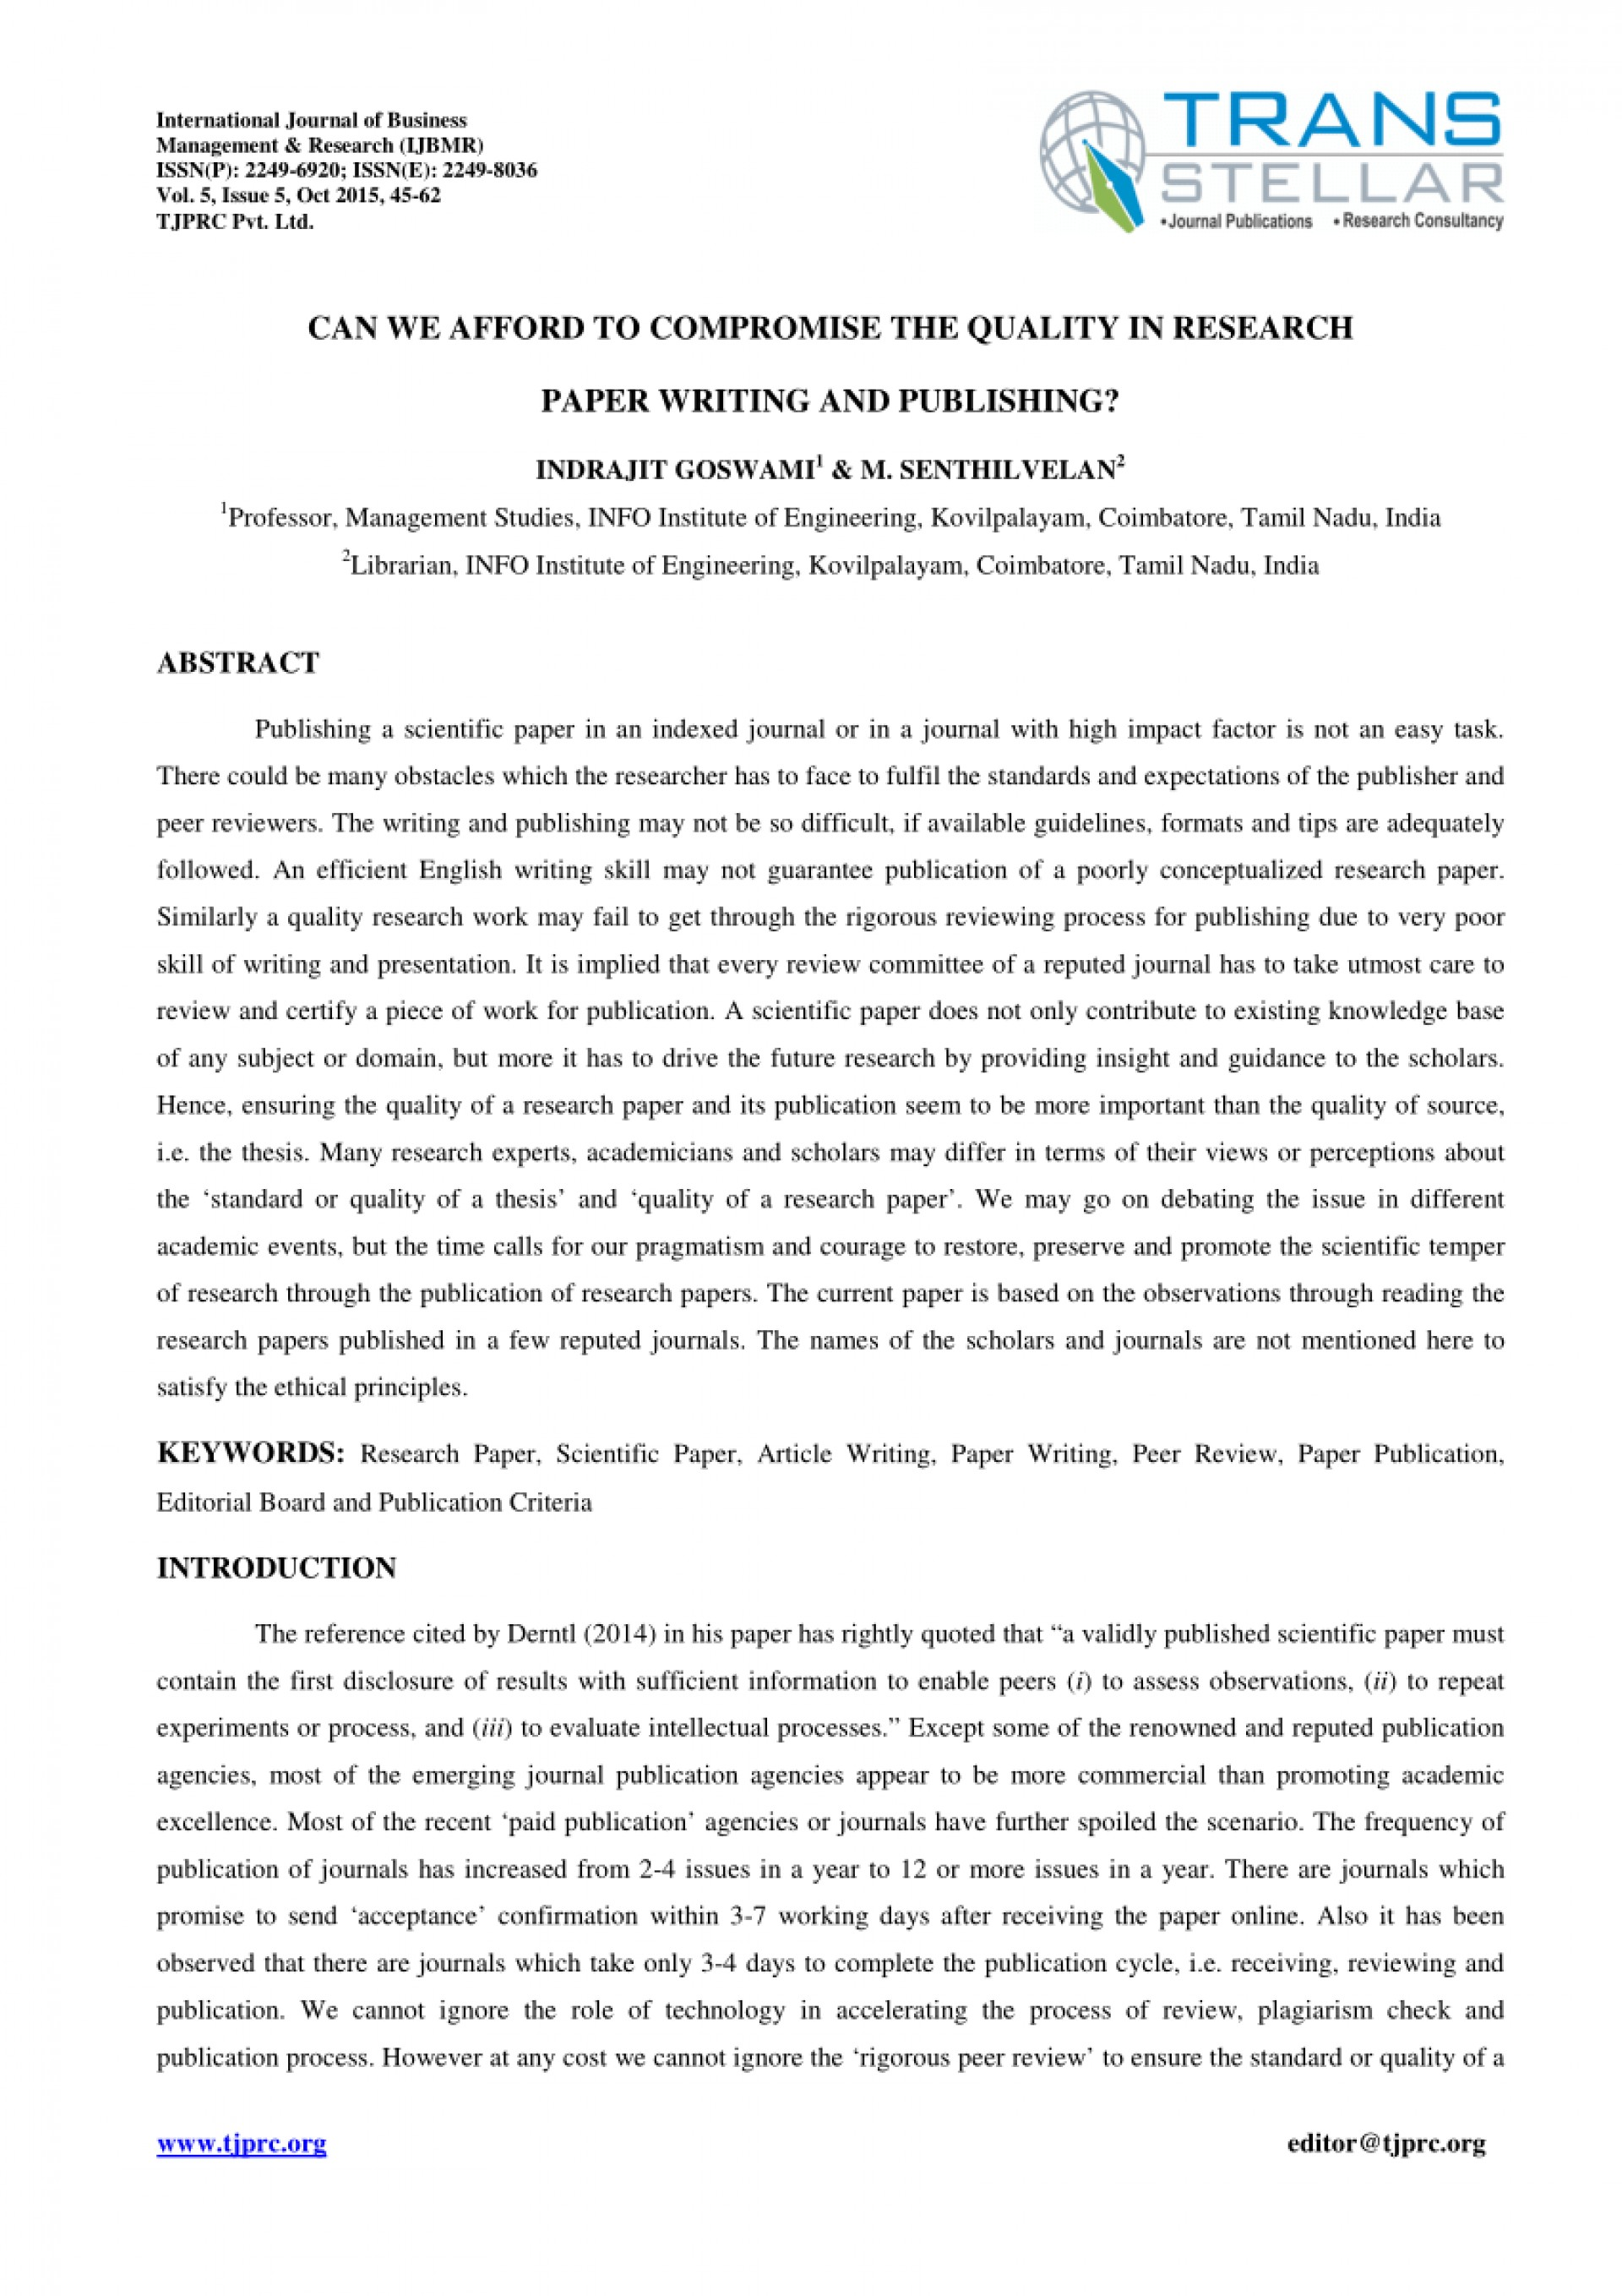 003 Largepreview How To Publish Research Paper Without Striking A Professor 1920